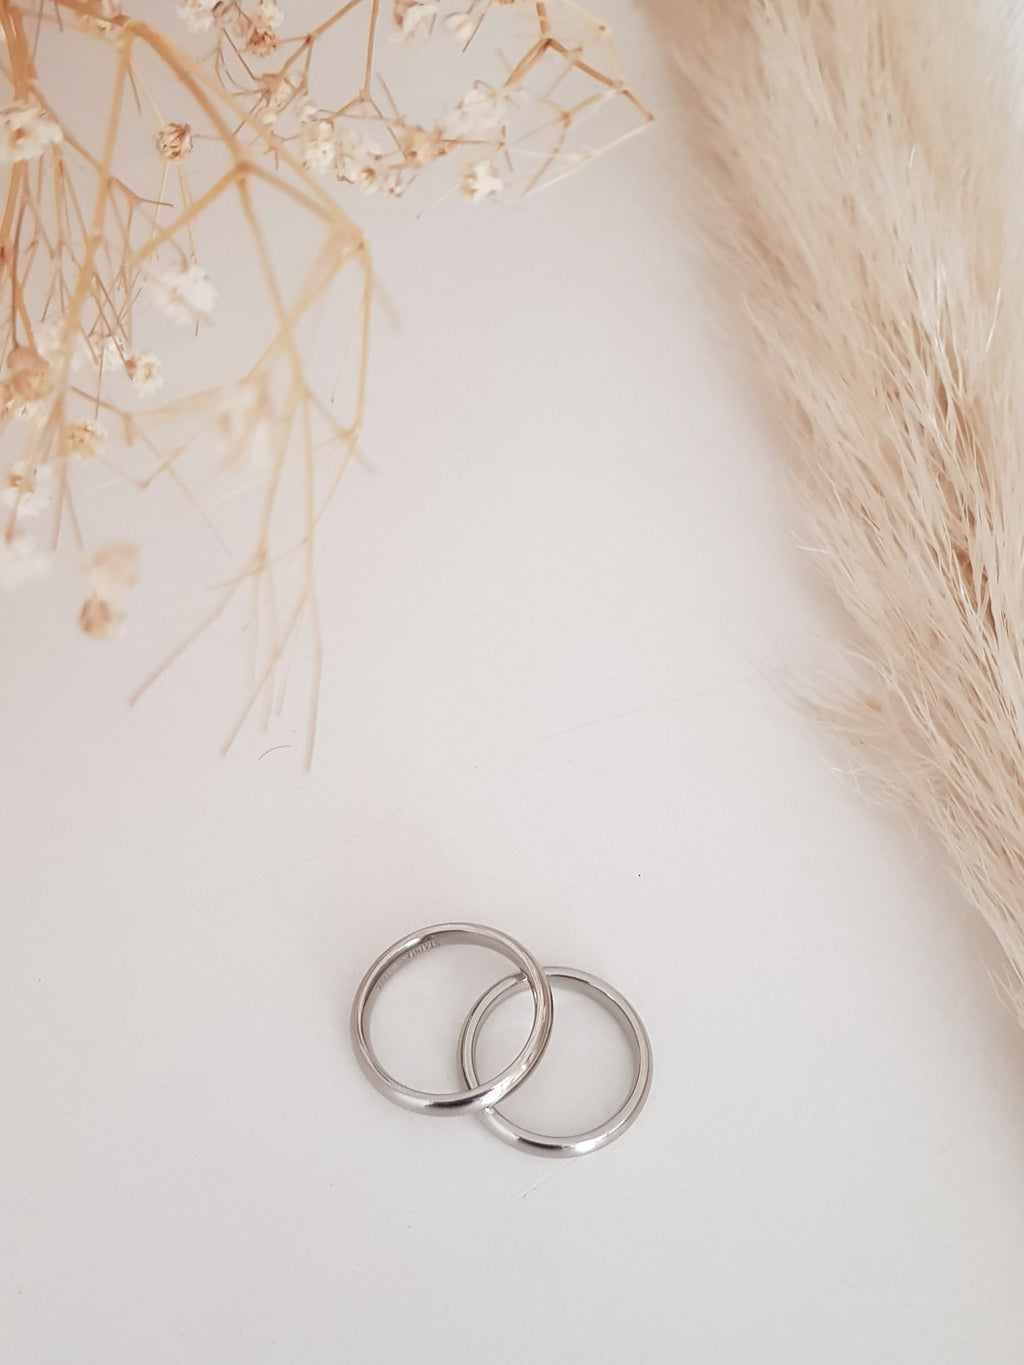 THINY RING // silver